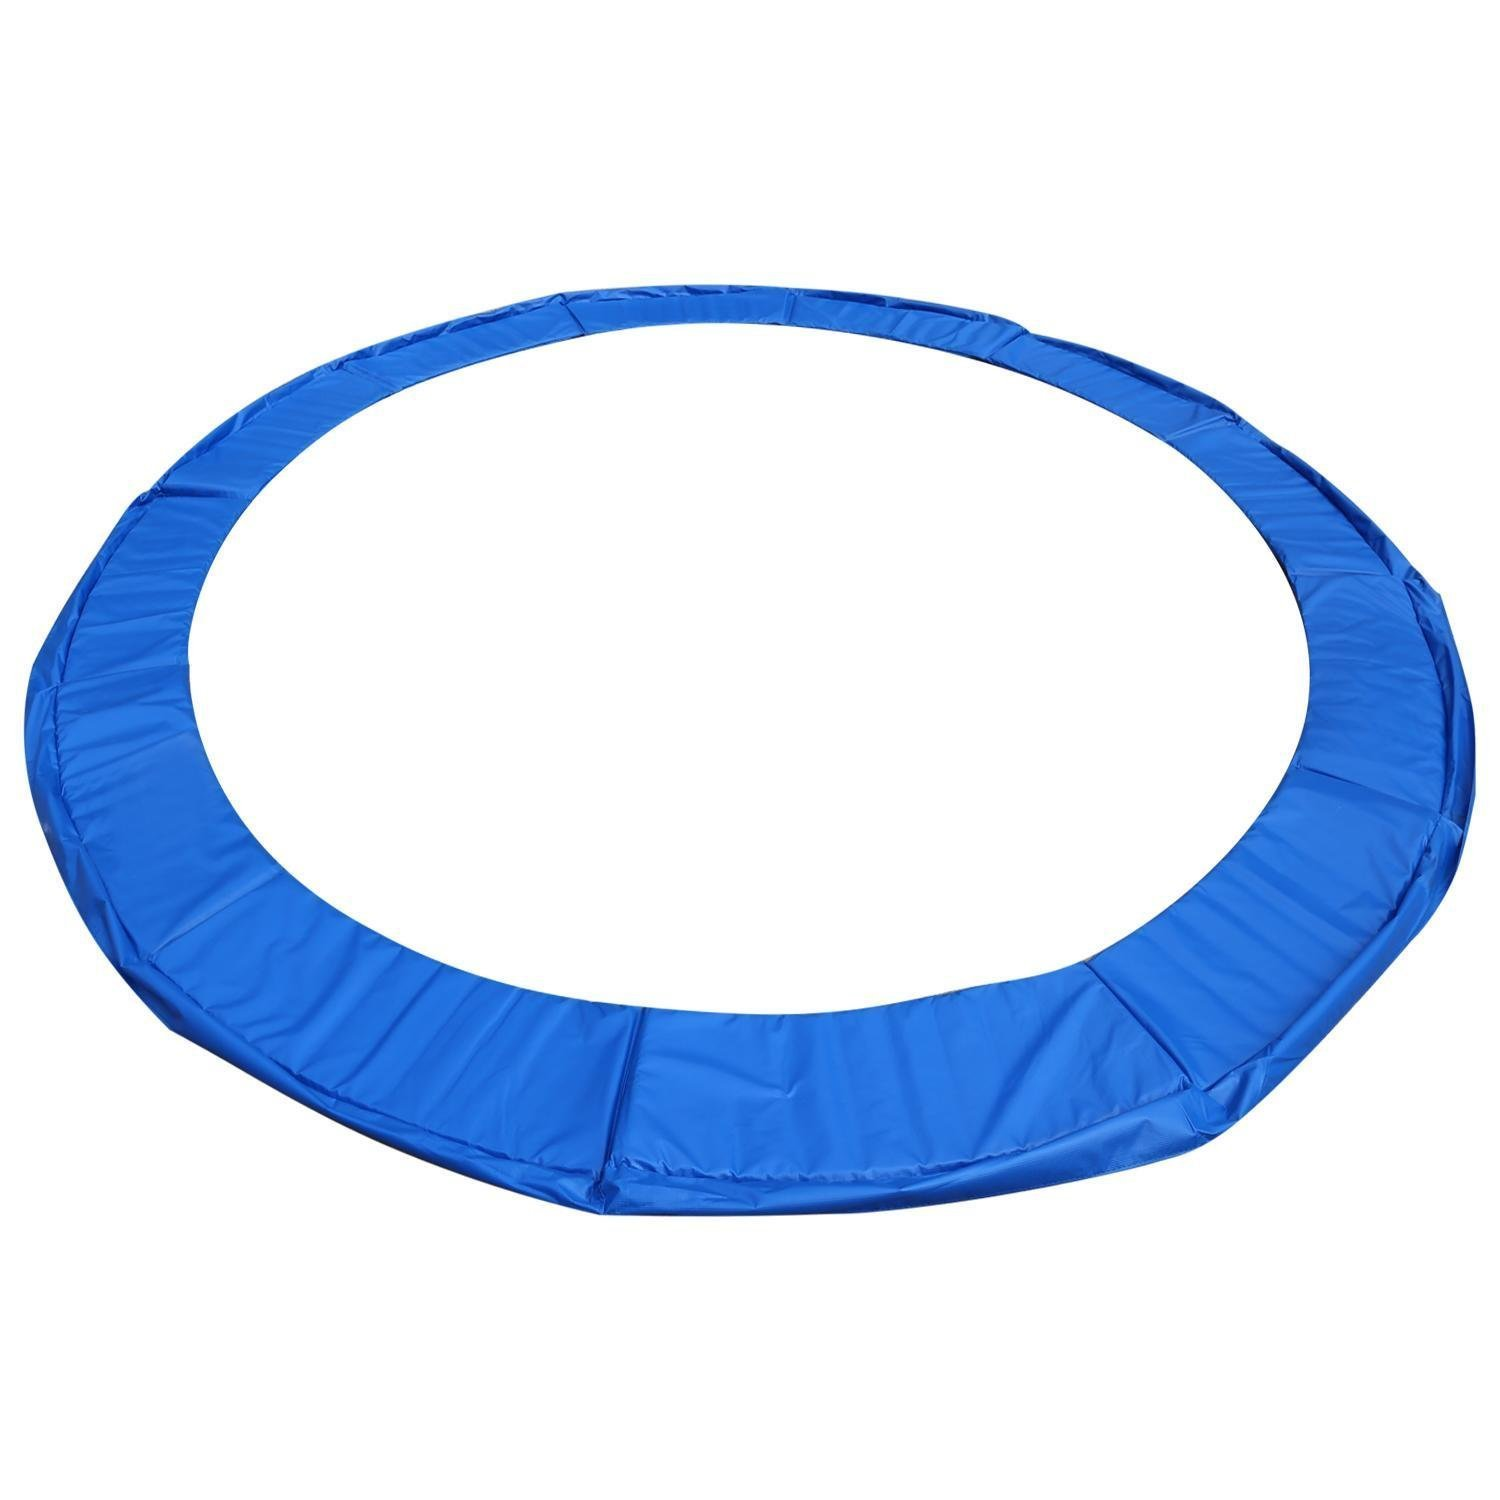 Professional 14FT Trampoline Safety Pad Round Frame Replacement US STOCK